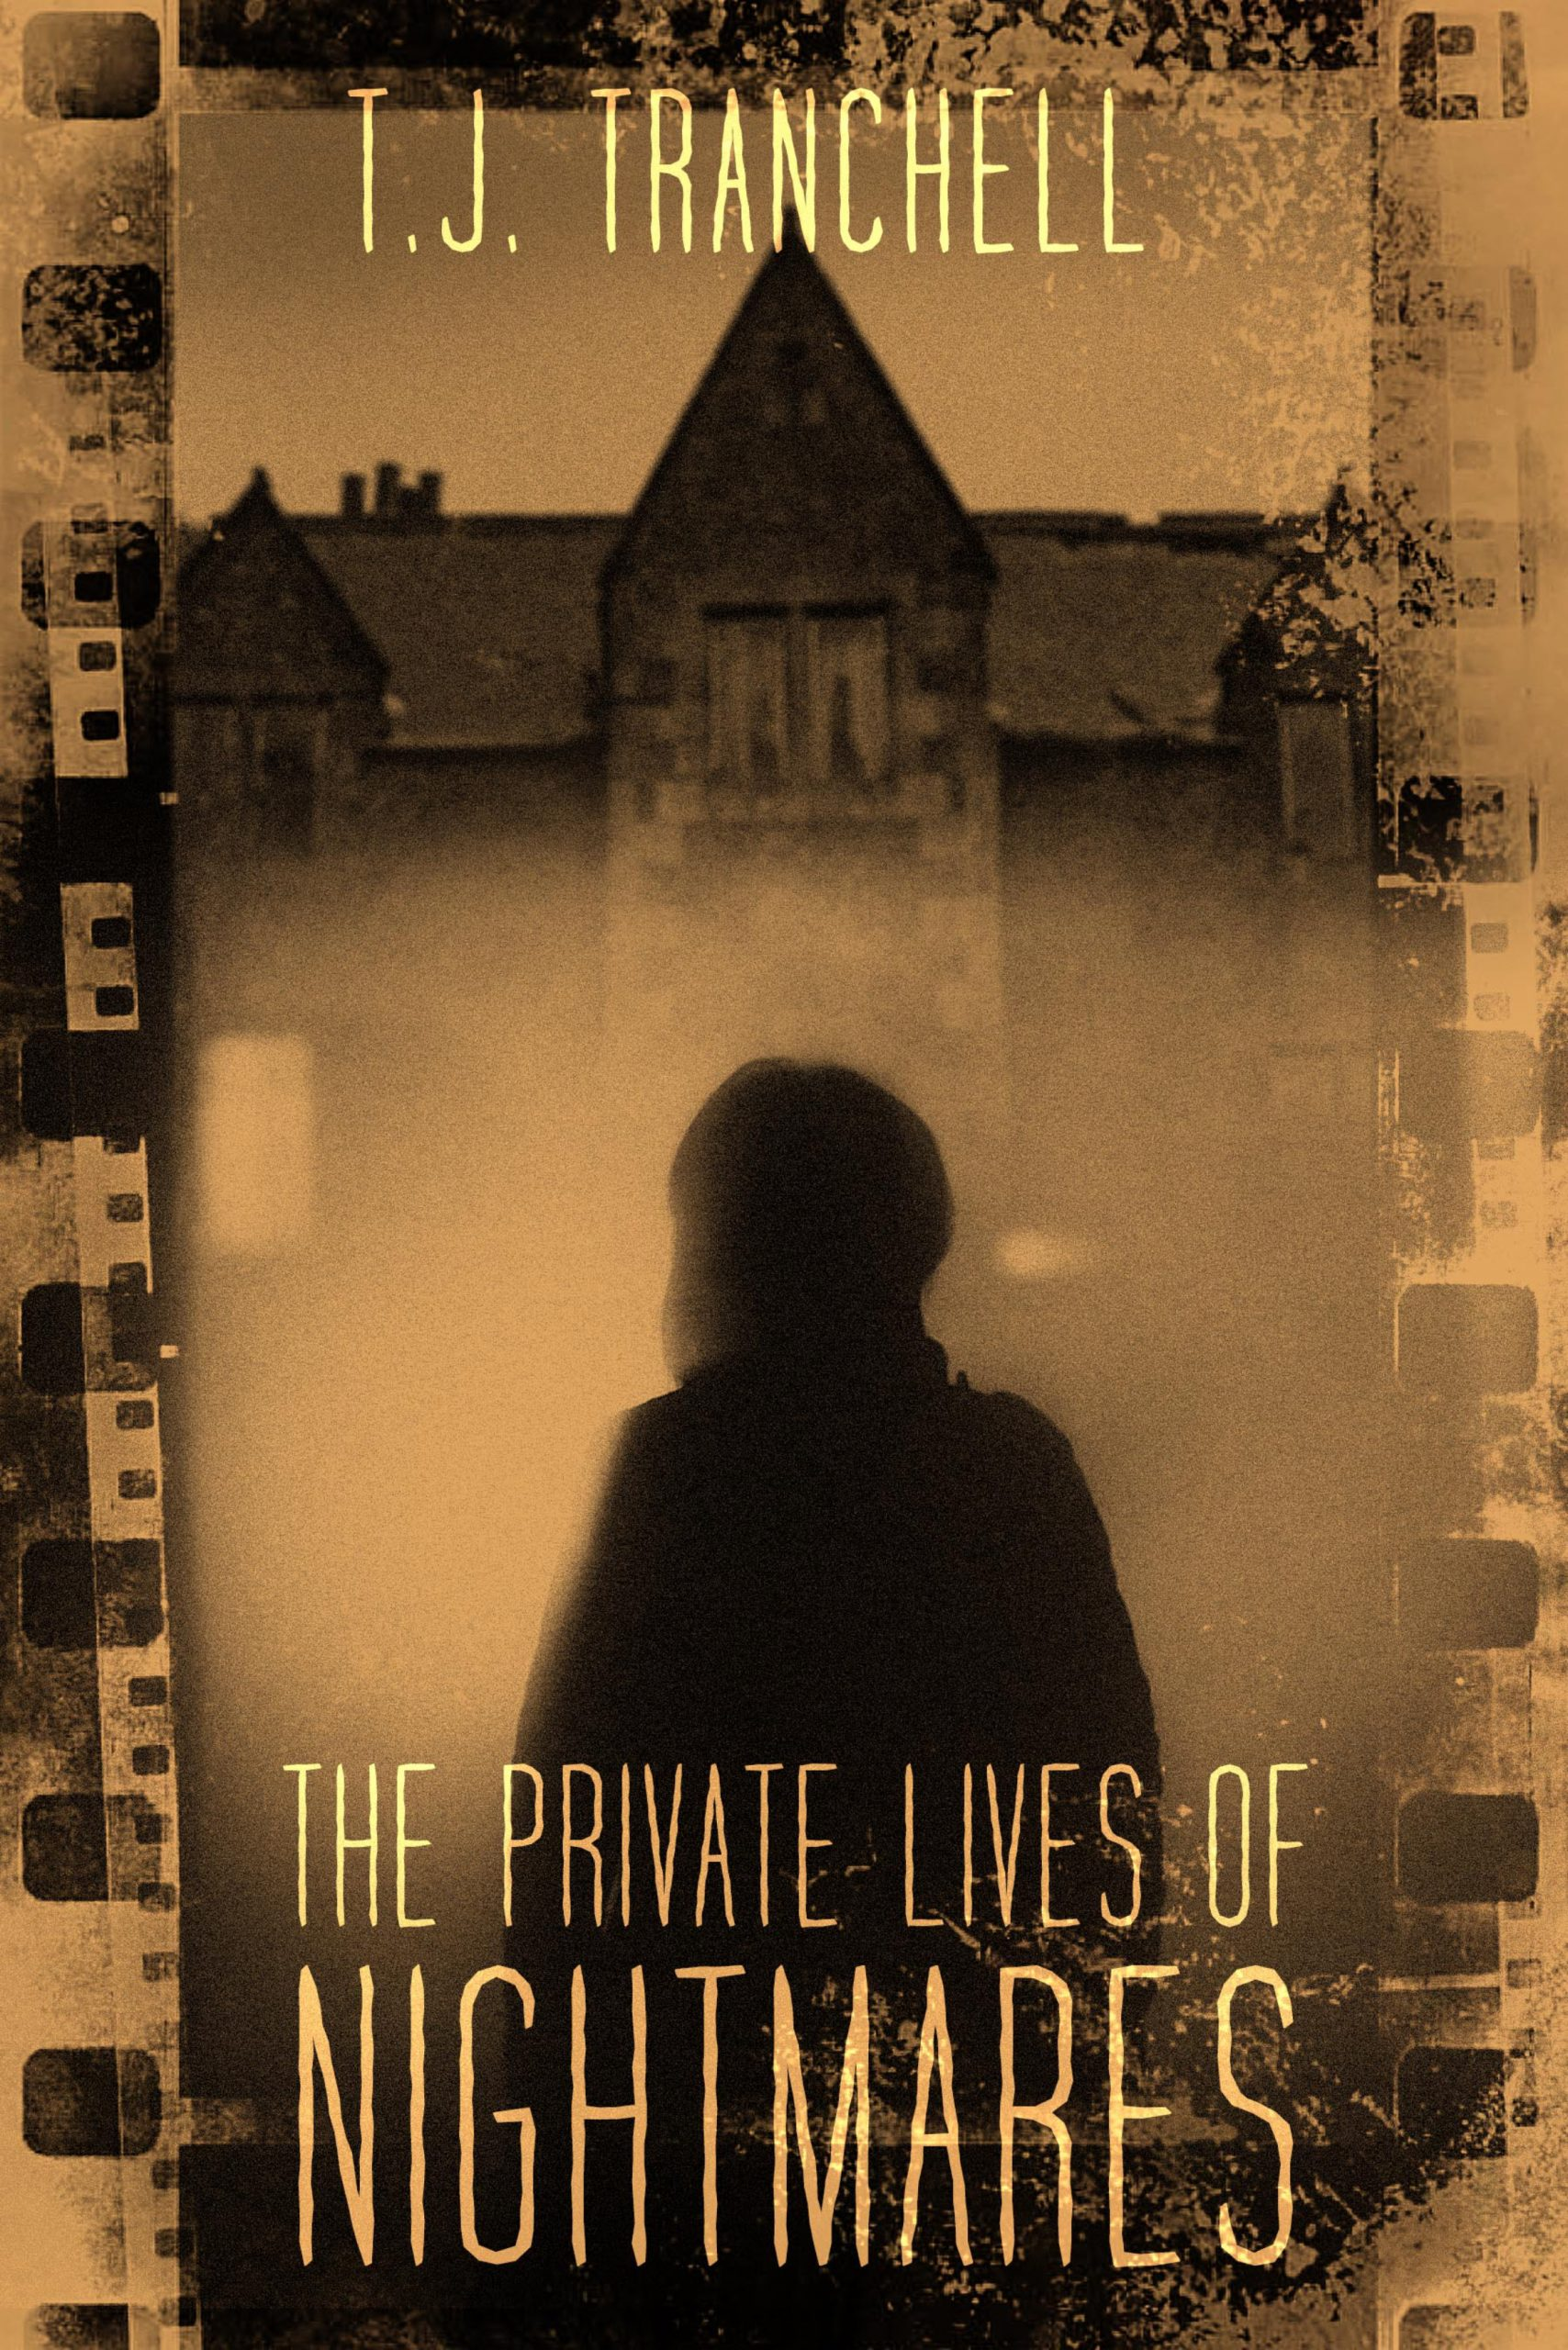 The Private Lives of Nightmares